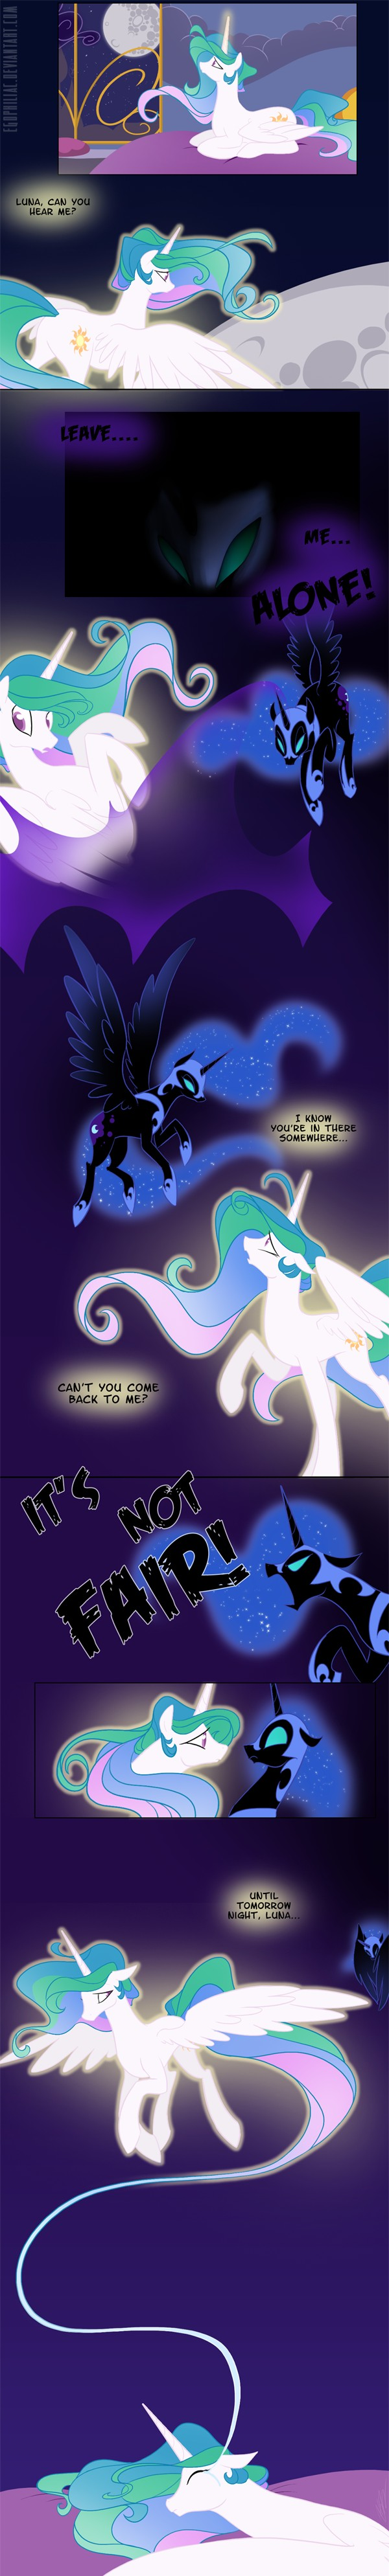 Tags: Anime, Egophiliac, My Little Pony, Princess Luna, Princess Celestia, Nightmare Moon, Pegasus, deviantART, Fanart, Fanart From DeviantART